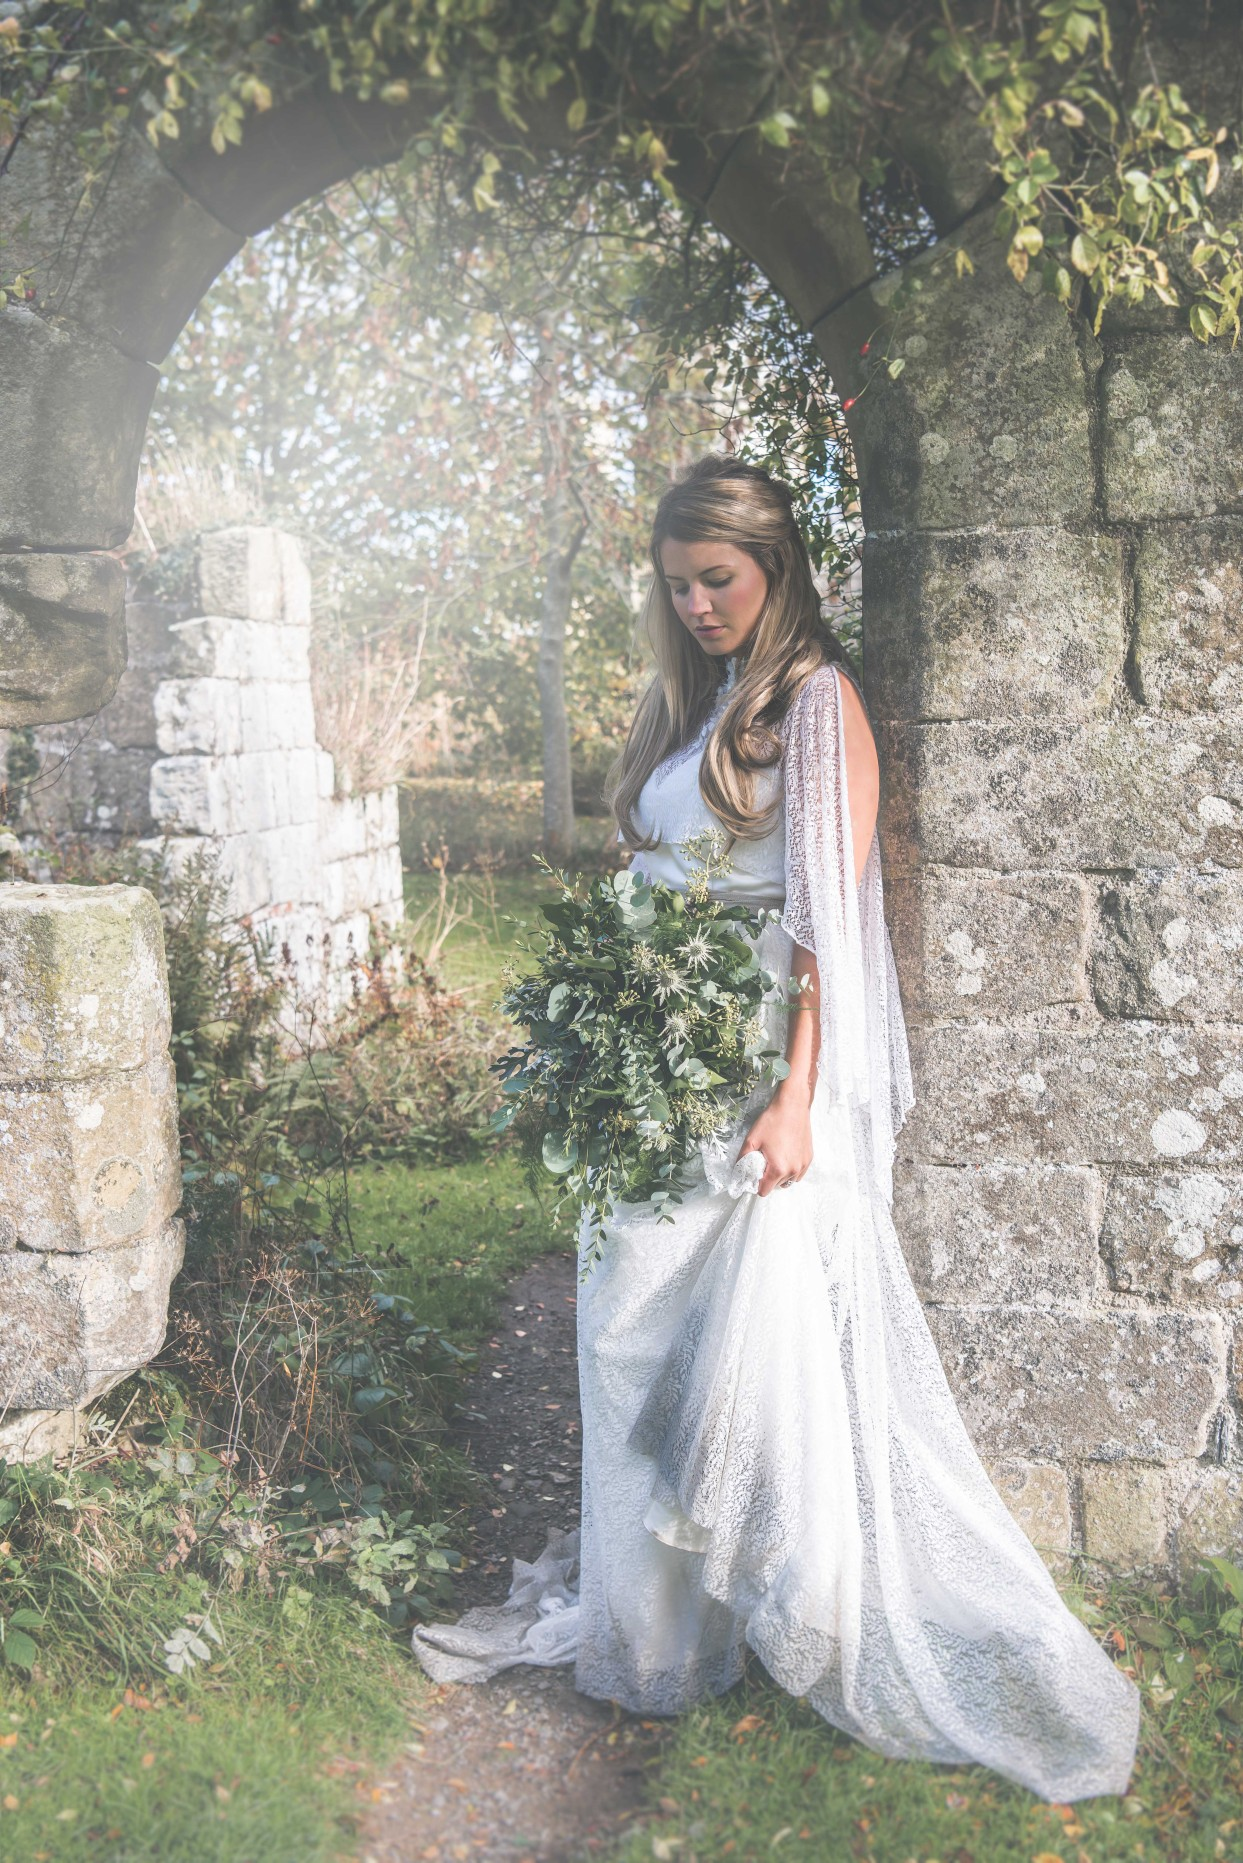 Live your own fairytale wedding - BexBrides - Jervaulx-36 (2)